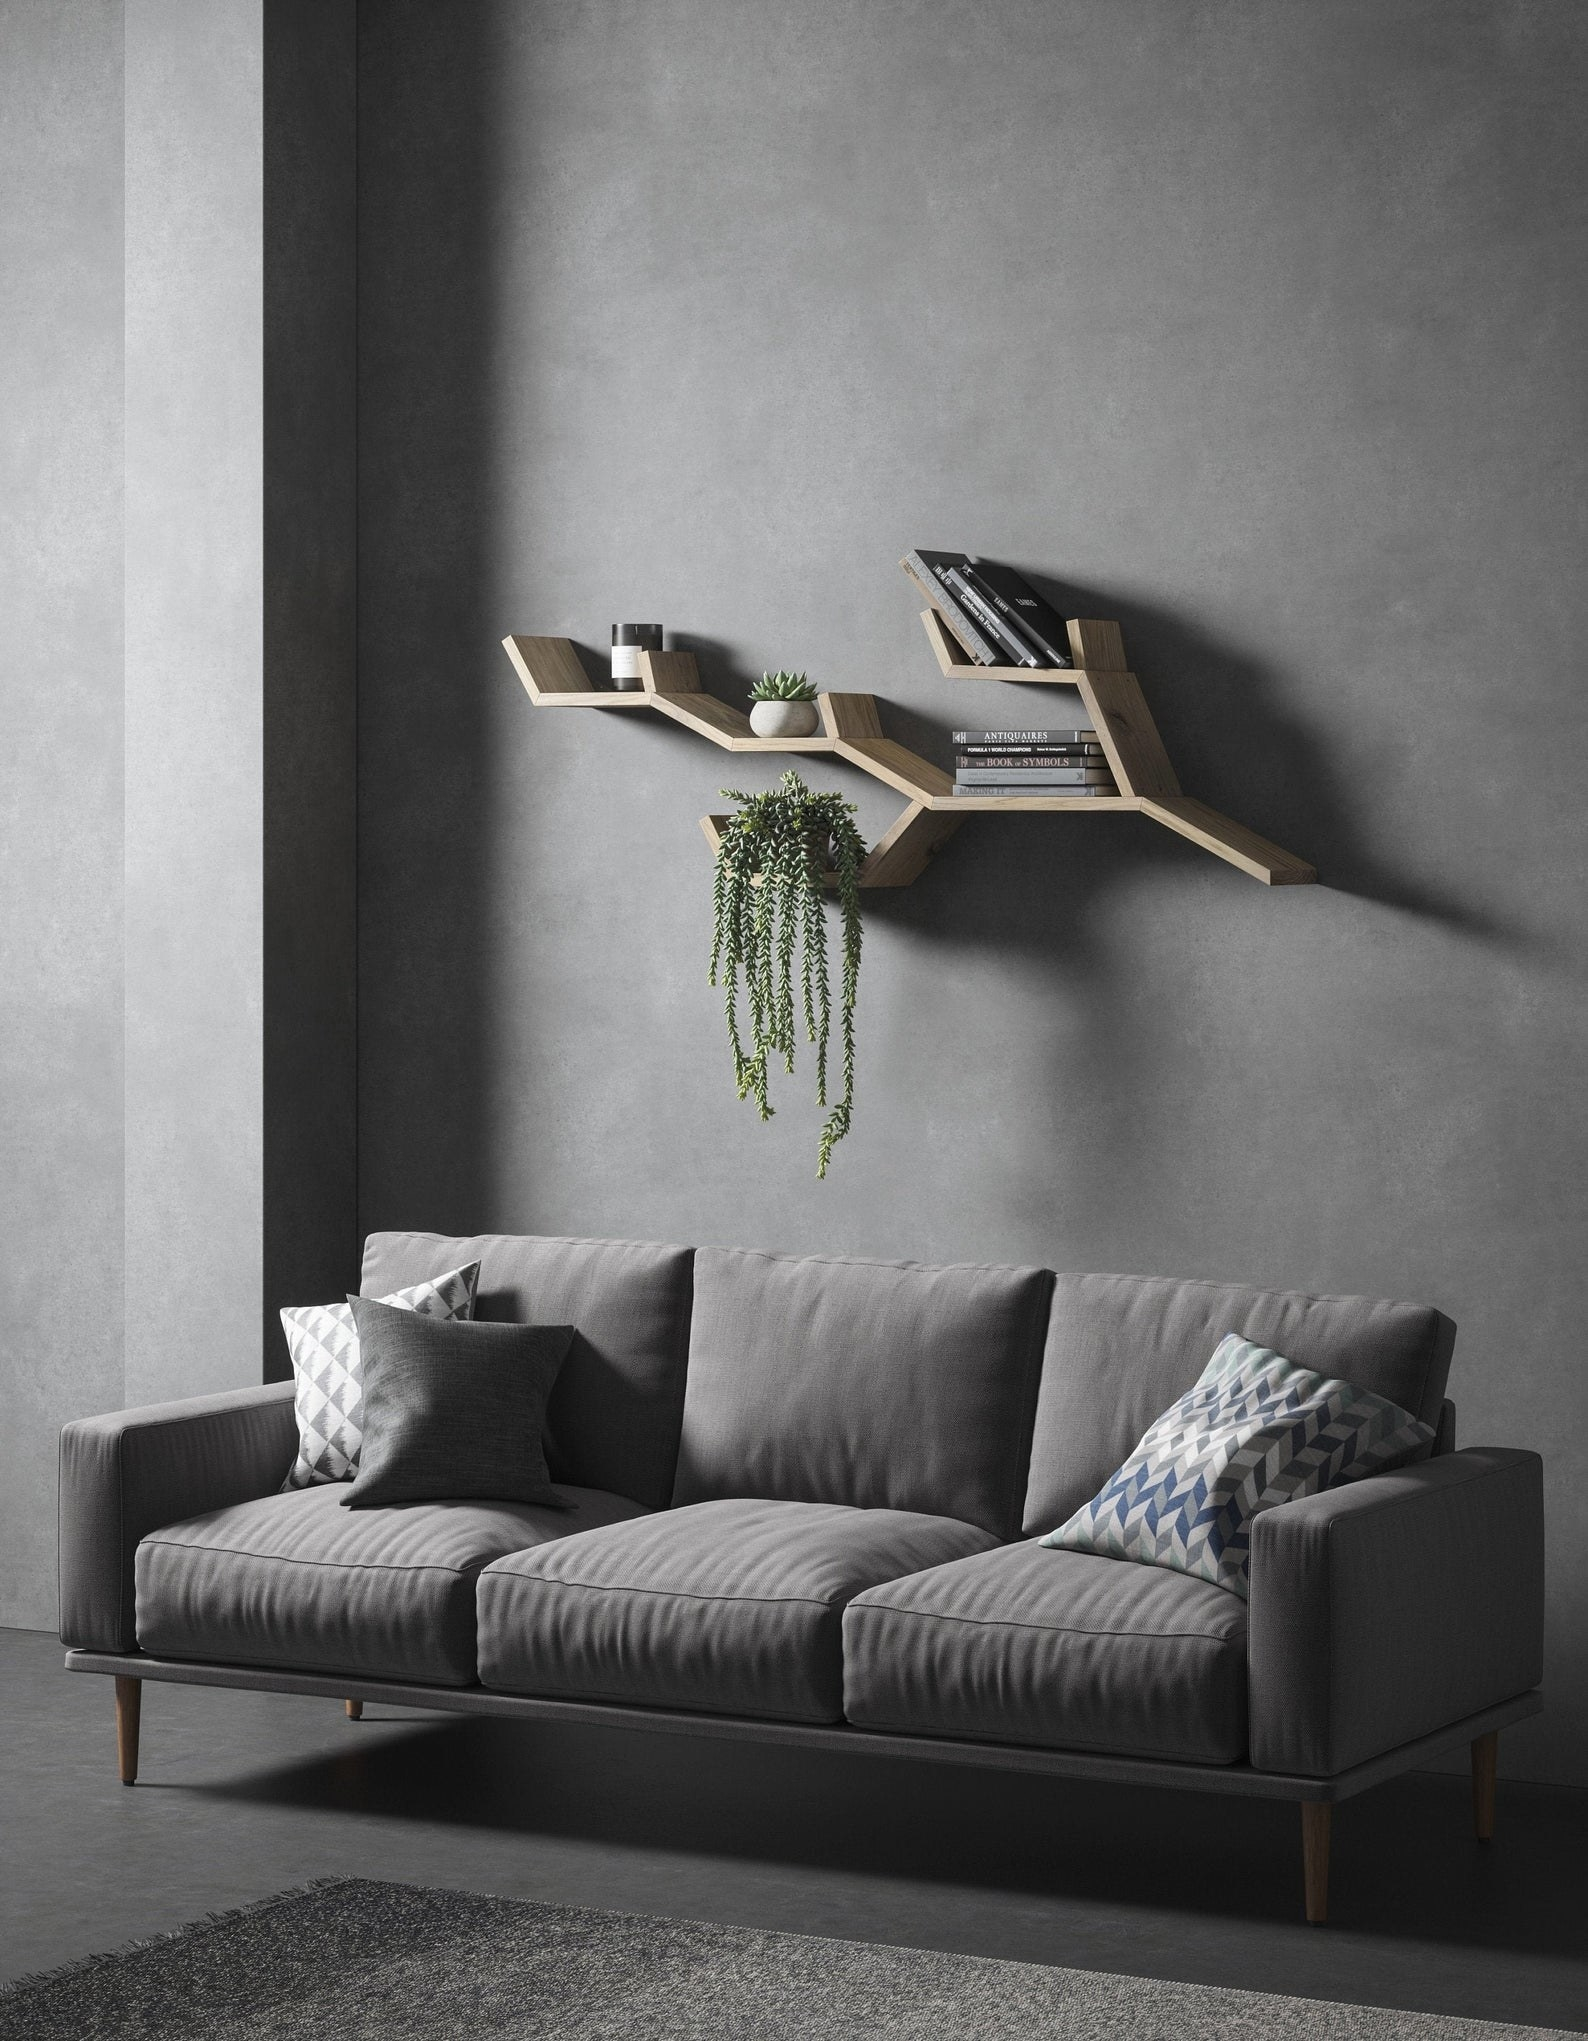 Wooden tree branch shaped bookshelf above the couch